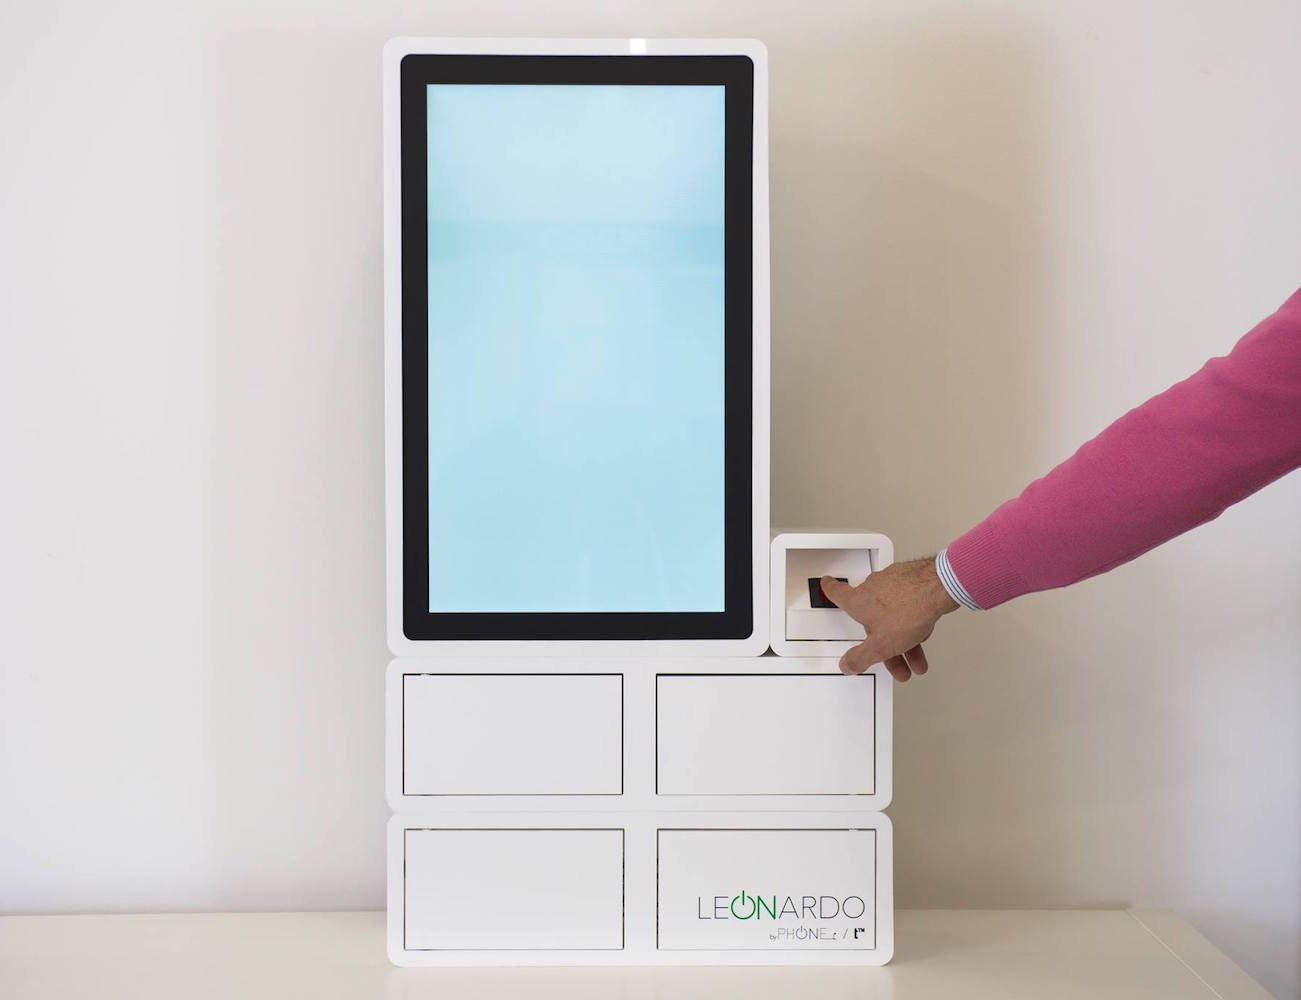 Leonardo – The New Innovative Public Chargebox